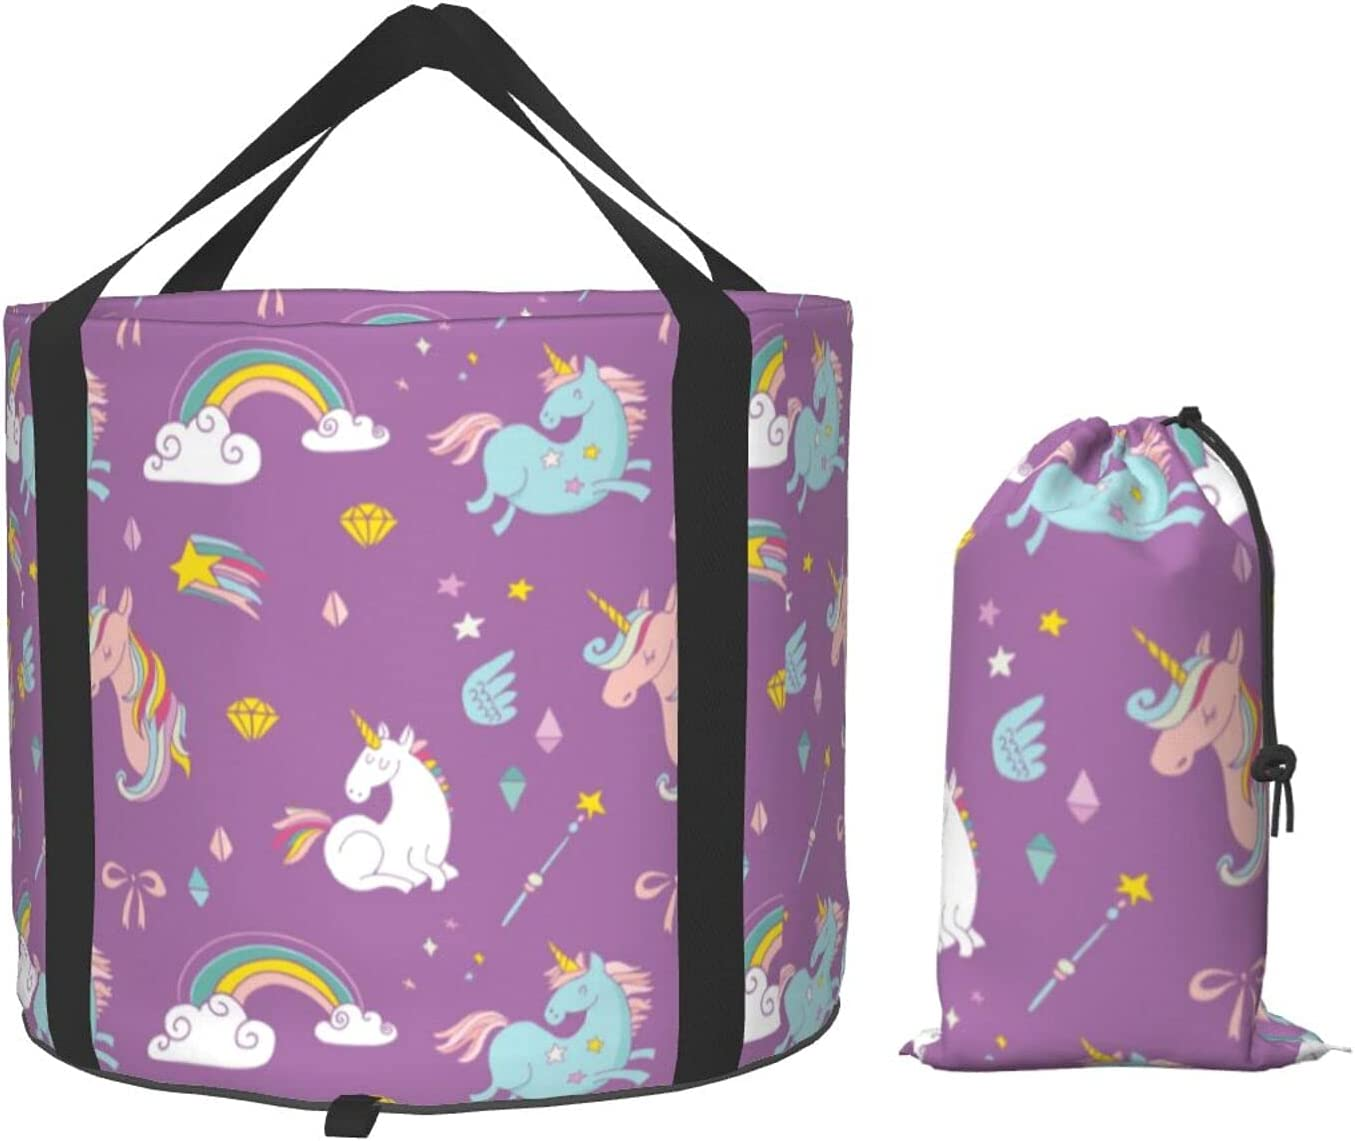 Rainbow Star Unicorns Collapsible Multifunctional Portabl Large discharge sale All stores are sold Bucket